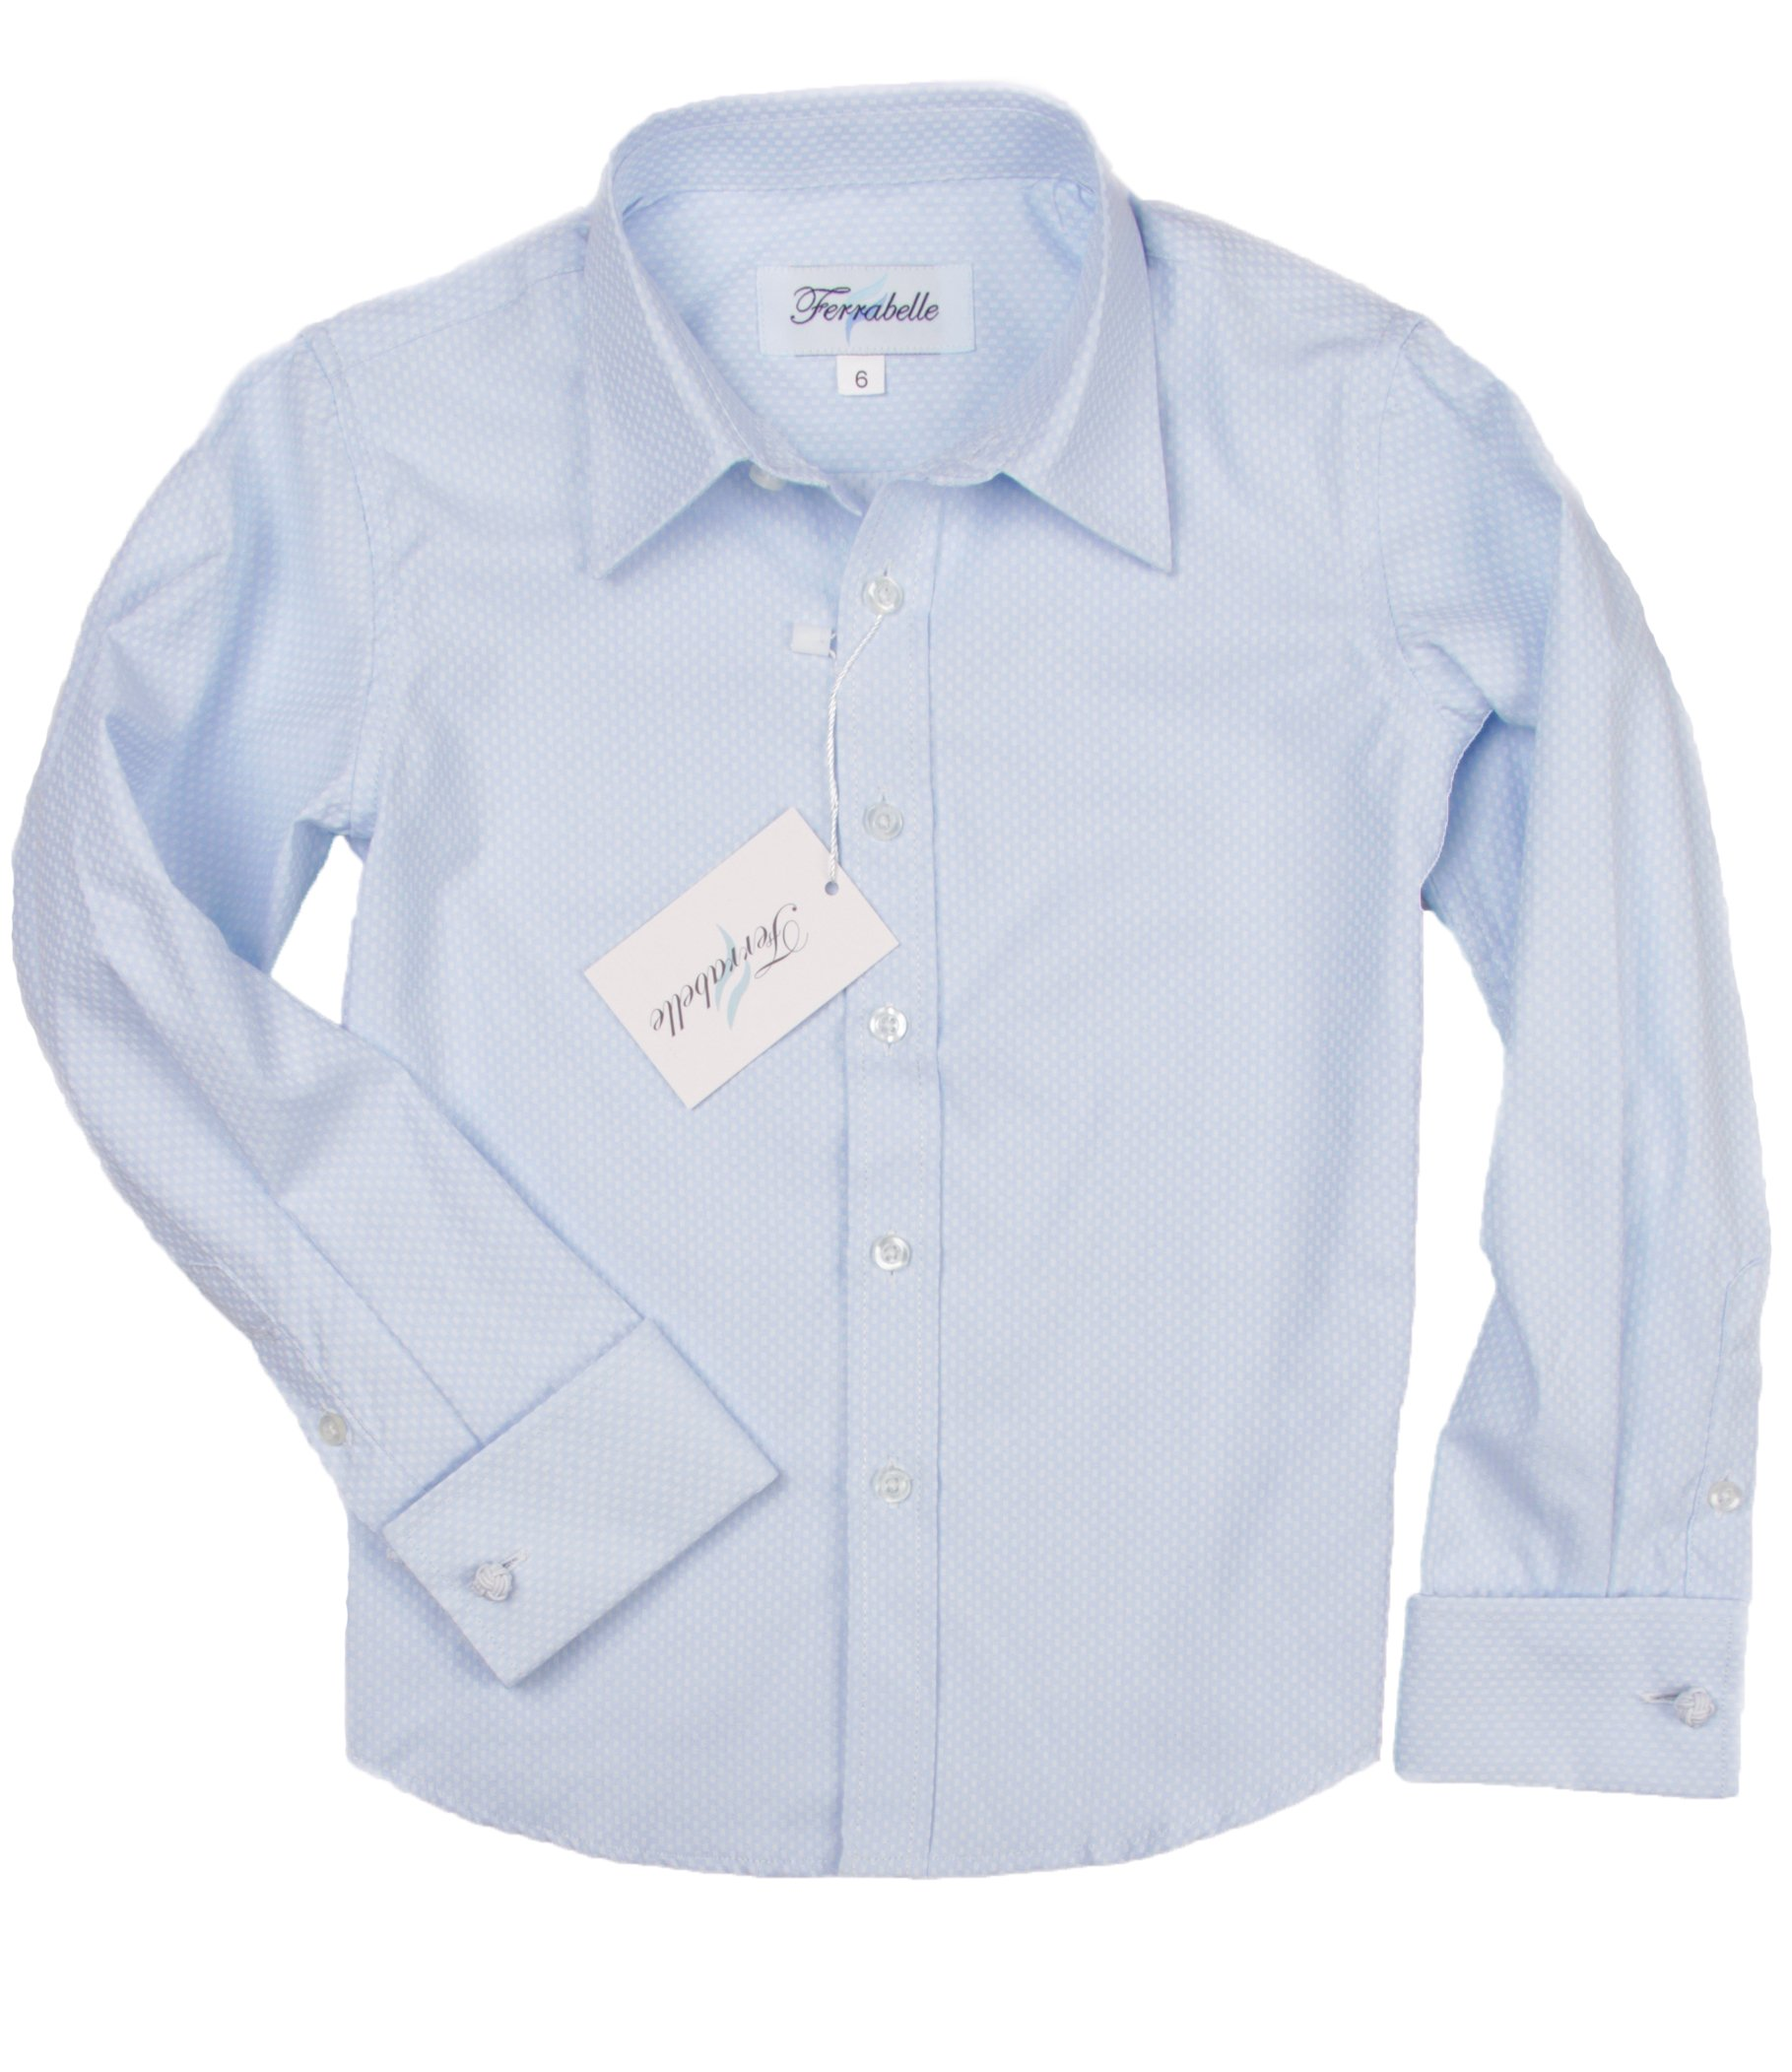 Boys Shirts For Suit Formal Dress Button Down Long Sleeve With French Cuff and Cufflinks Blue 7